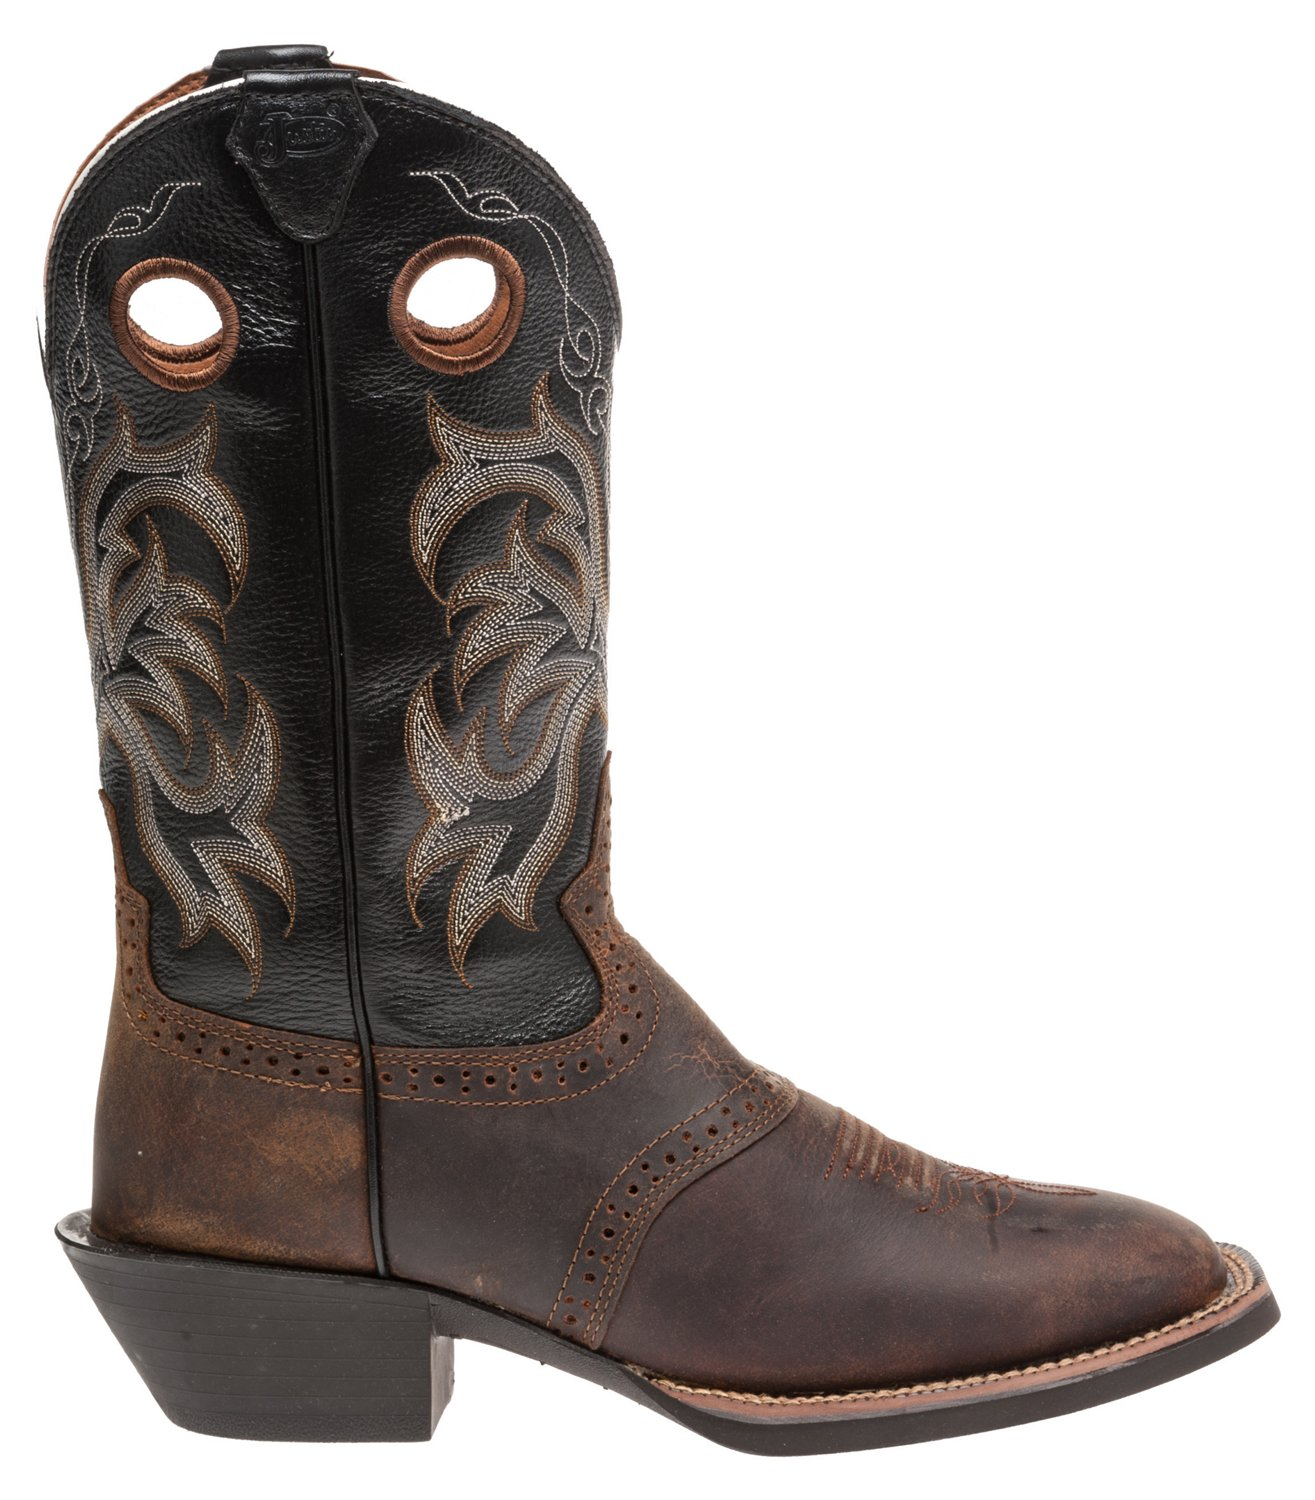 c8cc34a8f50da4 Display product reviews for Justin Men s Punchy Stressed Buffalo Western  Boots